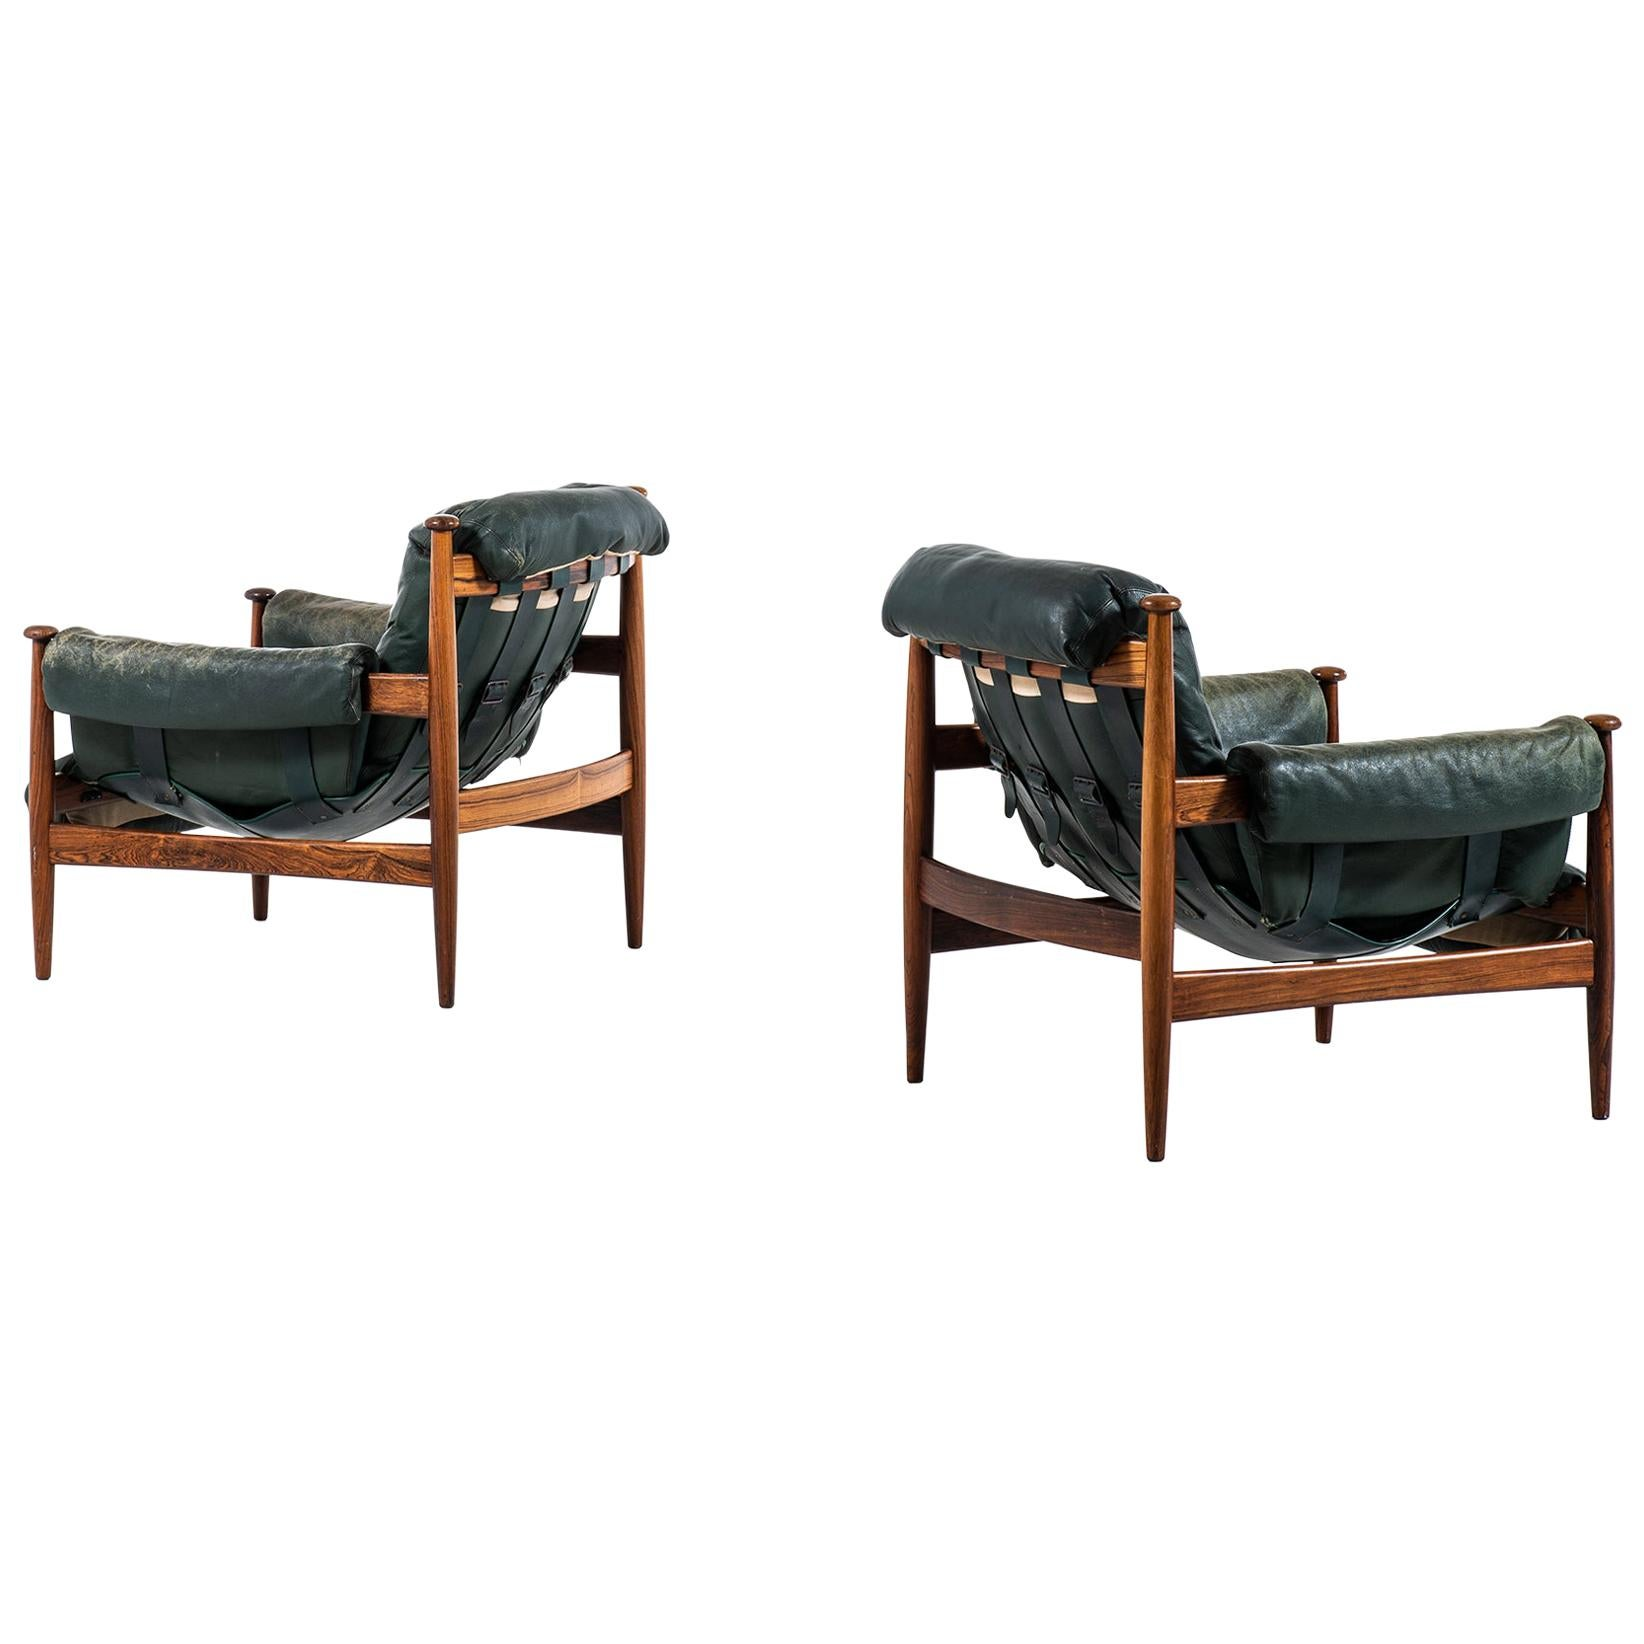 Eric Merthen Easy Chairs Model Amiral Produced by Ire Möbler in Sweden